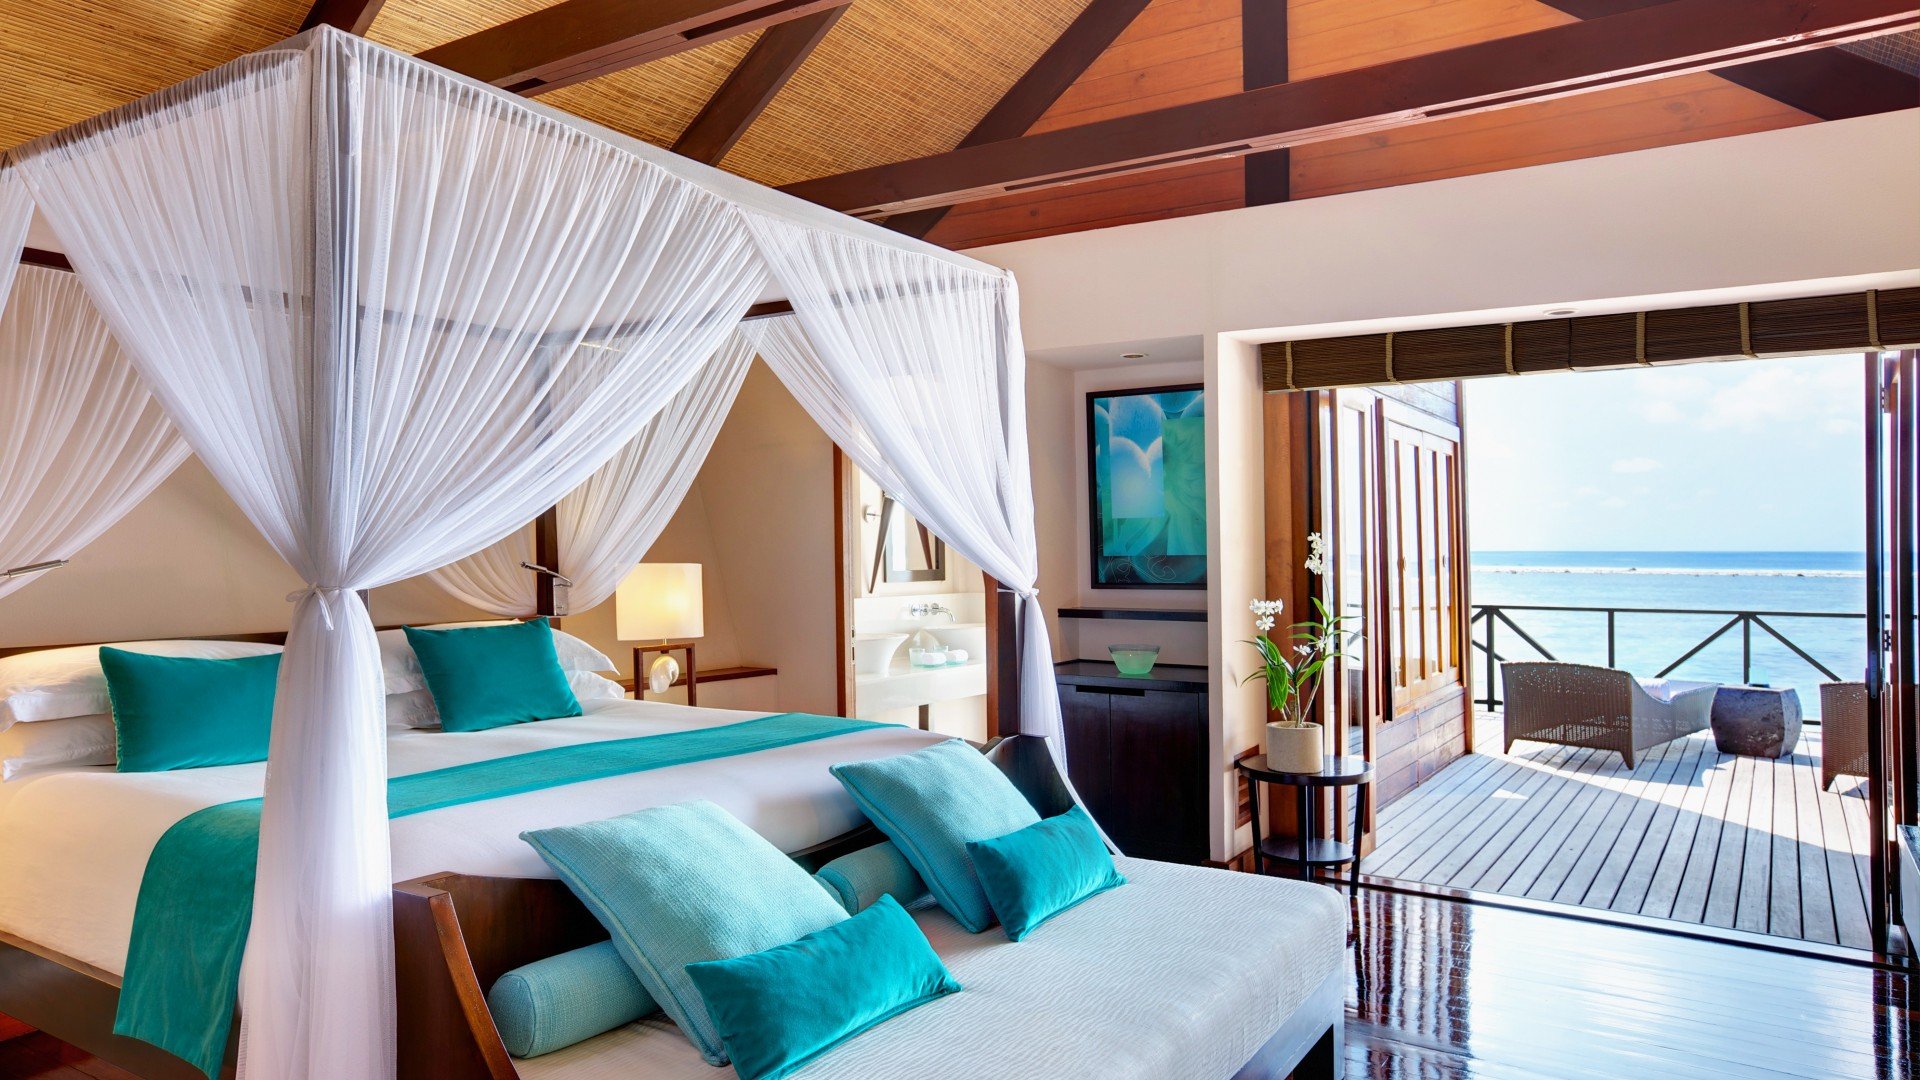 Maldives Water Villa, Best Hotels of 2015, tourism, travel, resort, vacation, Lux, bed, blue (horizontal)